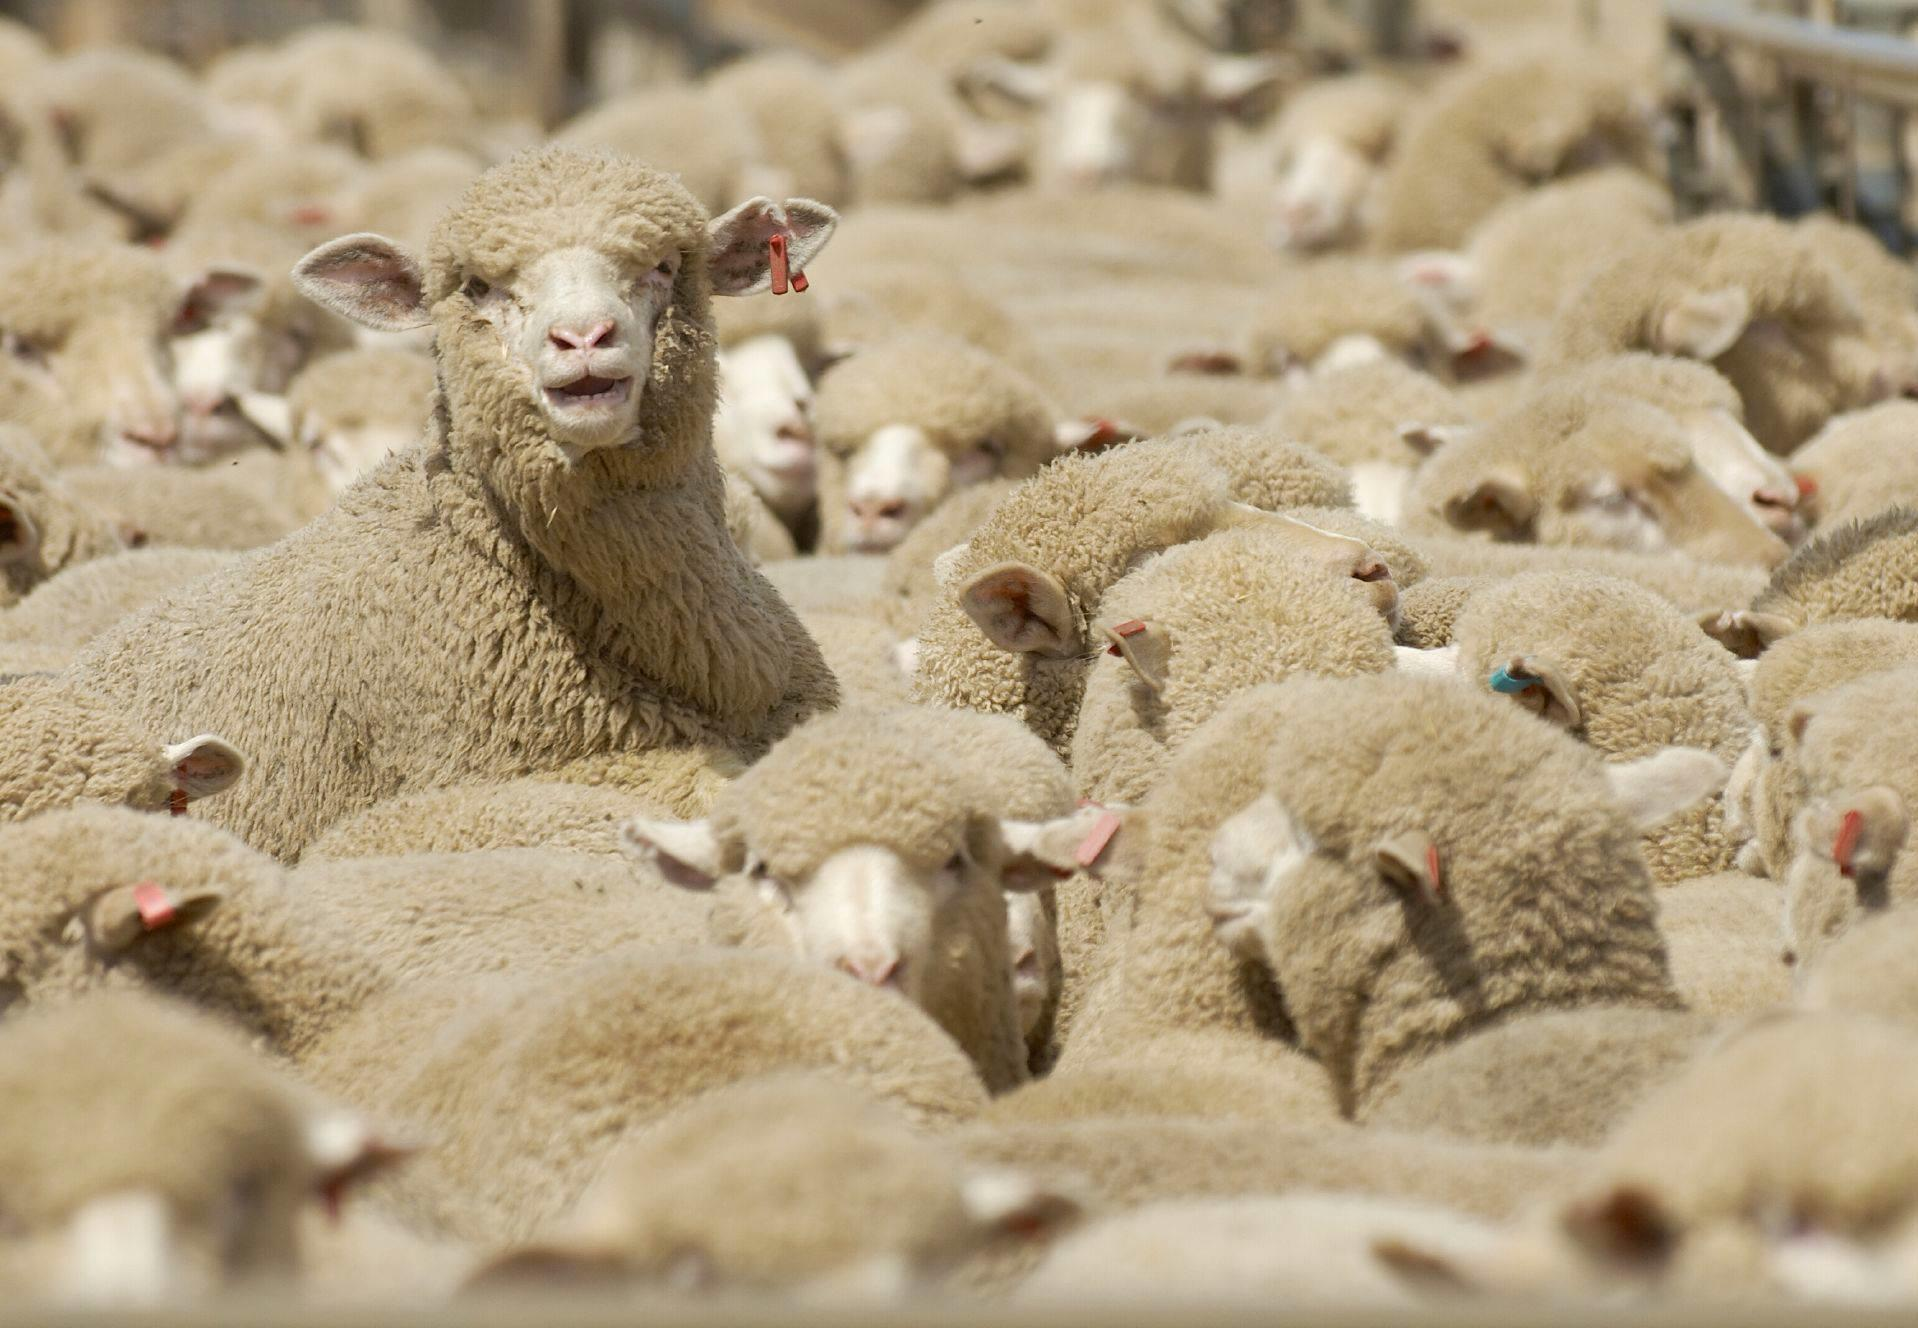 Sheep for wool production